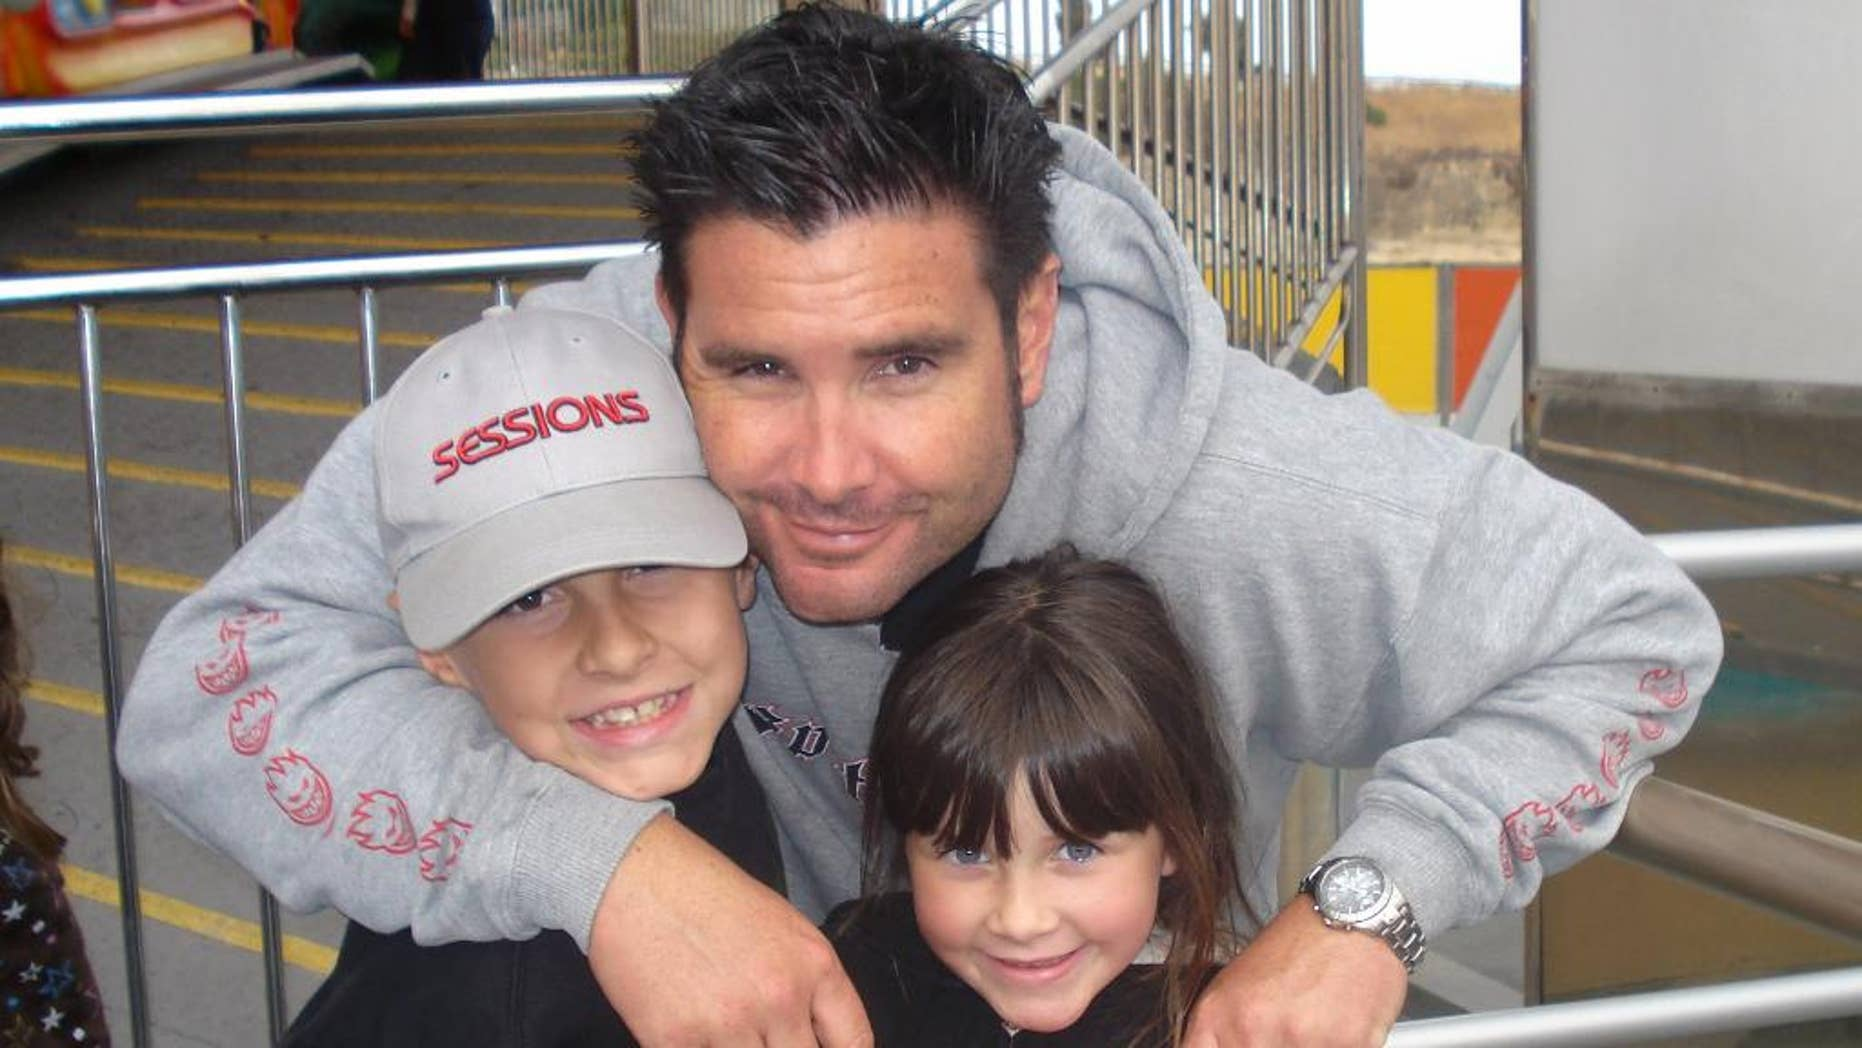 FILE - This undated file photo provided Tuesday April 5, 2011 by John Stow shows Bryan Stow holding his 12-year-old son and 8-year-old daughter. Stow who suffered a traumatic brain injury after being beaten by two Dodger fans put up his hands and fingers, fist bumped his mom and talked about his goals in a new interview three years after the attack outside Dodger Stadium. Stow, wearing a Giants tank top, spoke to ESPN on Tuesday, Oct. 21, 2014 from his parents' home in the Northern California city of Capitola, where he watched Game 1 of the World Series between the Giants and Kansas City Royals. (AP Photo/John Stow, File)